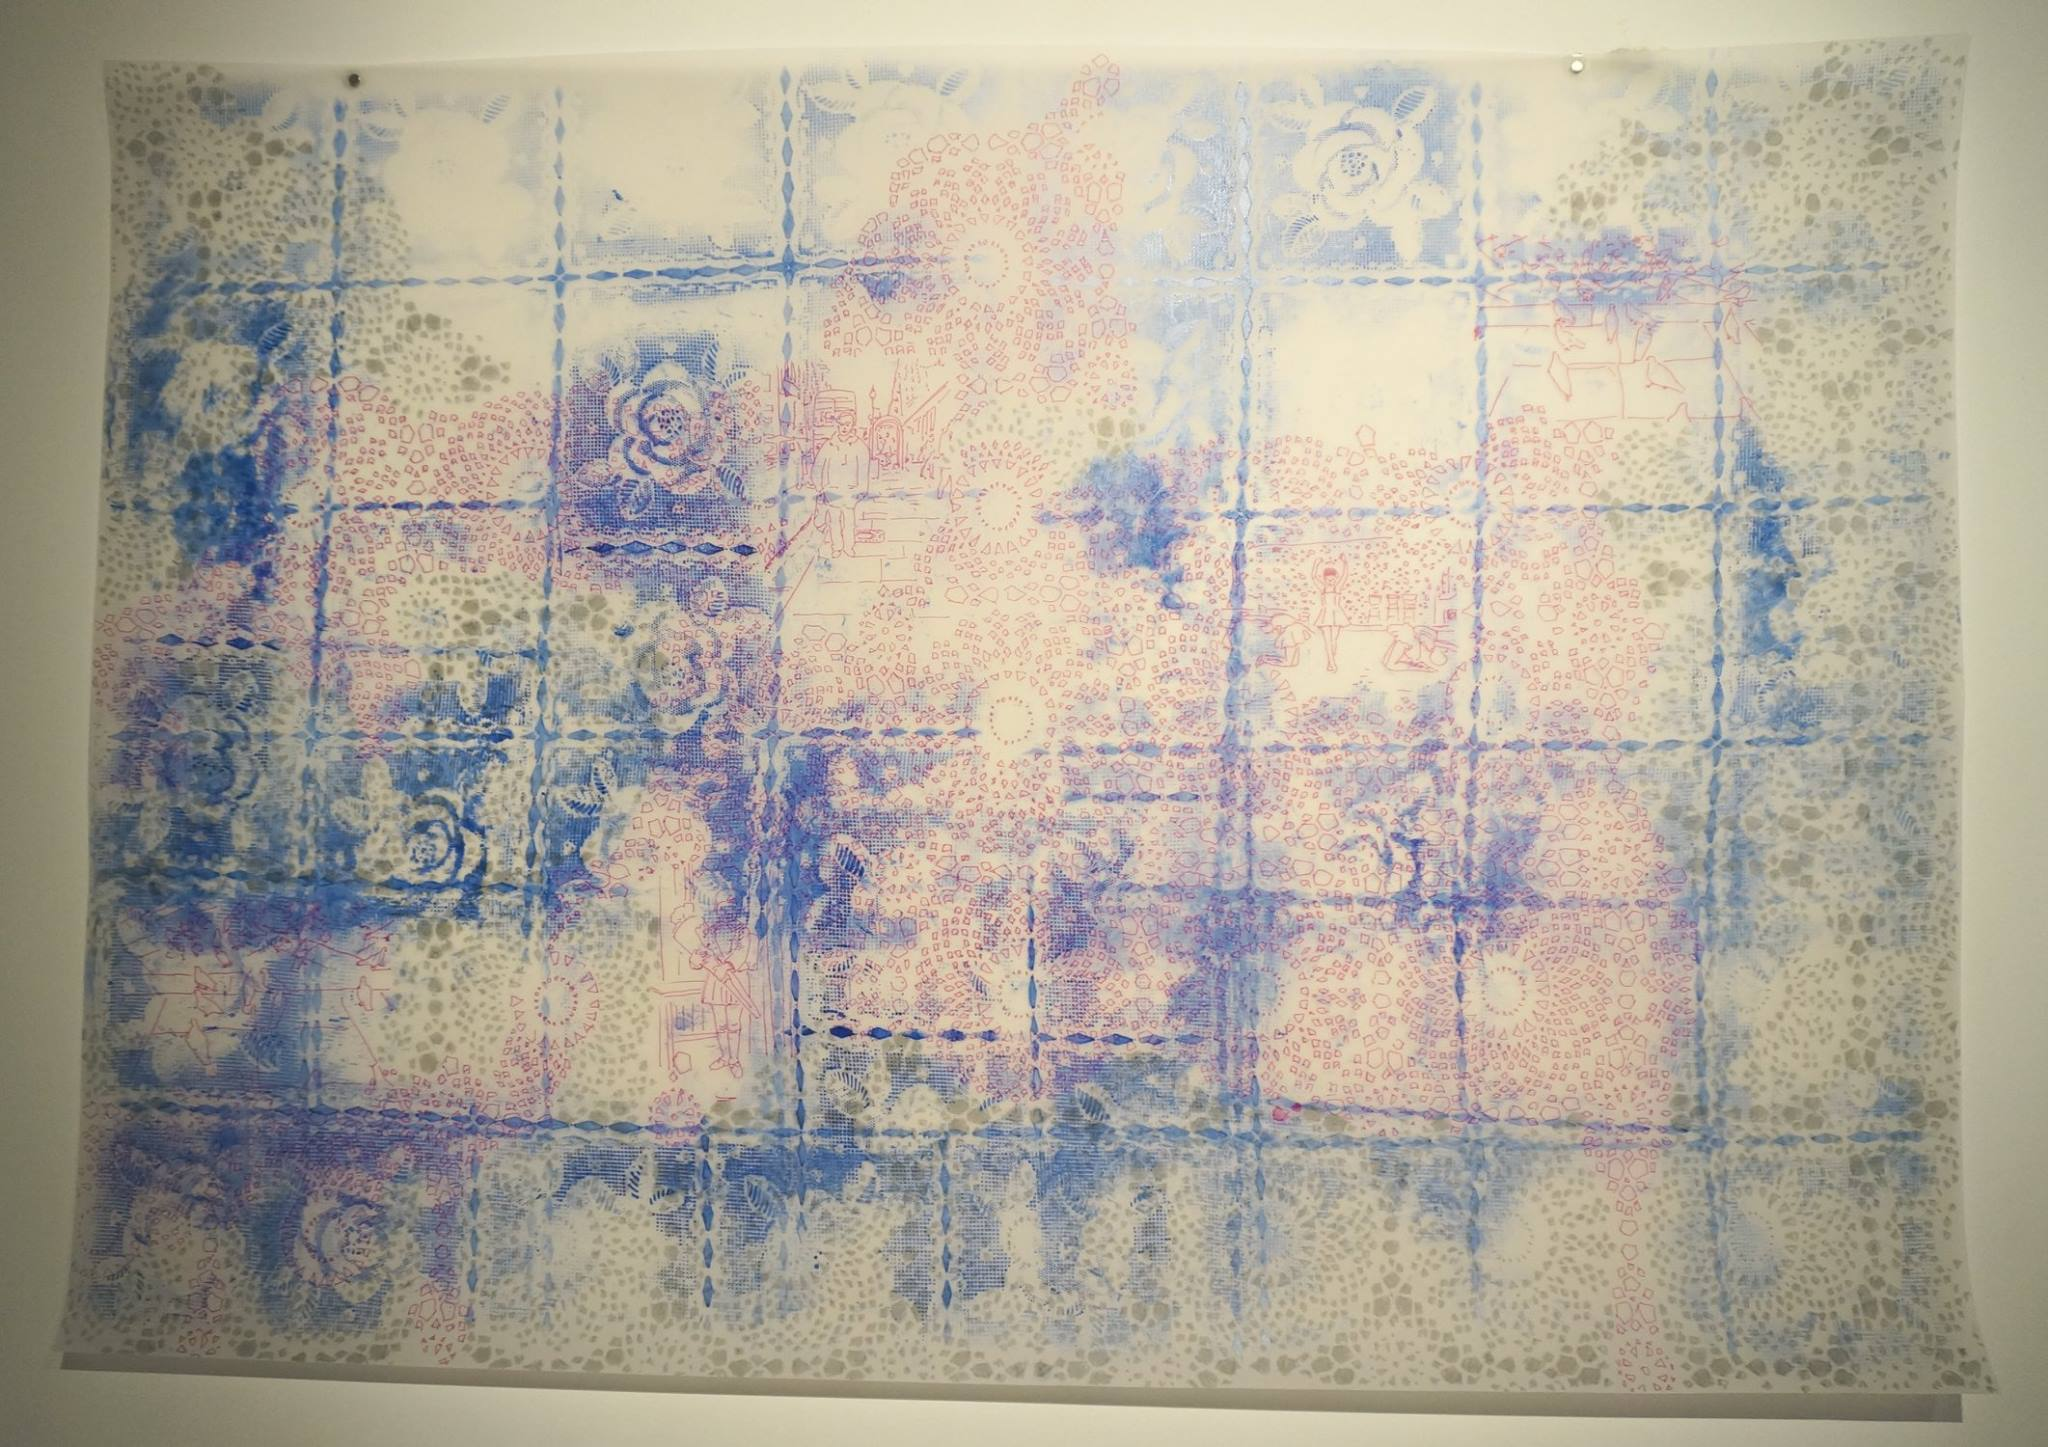 Retrospectacle, 2014-2015, serie of 5 drawings, marker on parchment paper (oil, horsehair), variable dimensions